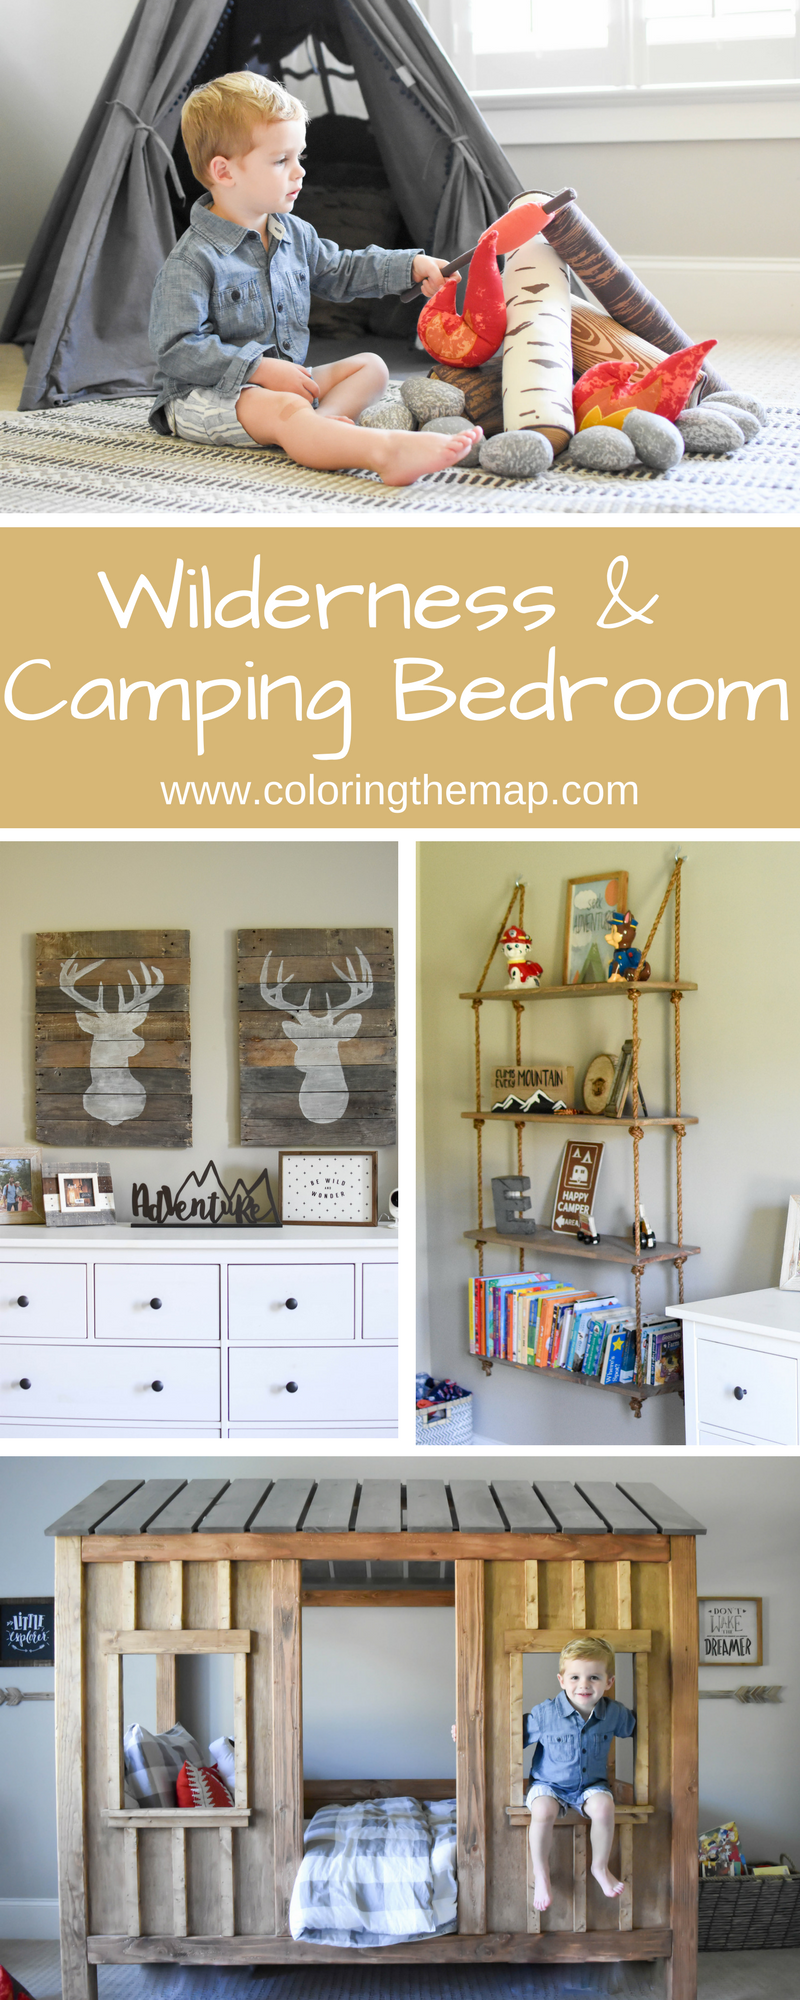 Wilderness Boys Room Coloring The Map Outdoor Themed Bedroom Camping Theme Bedroom Boys Room Colors